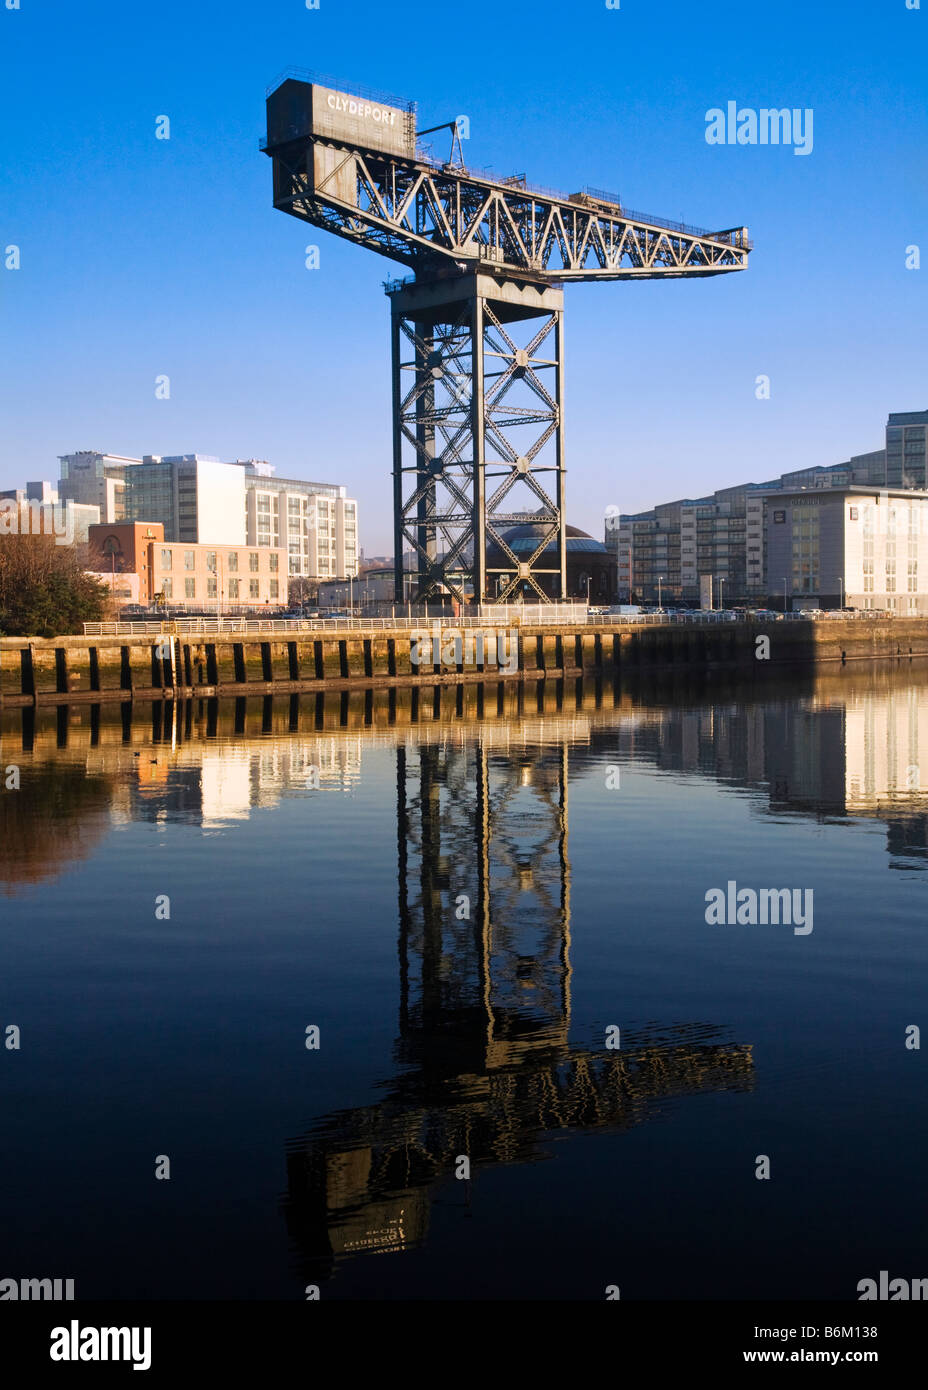 The Finnieston Crane on the River Clyde, Glasgow, Scotland. - Stock Image